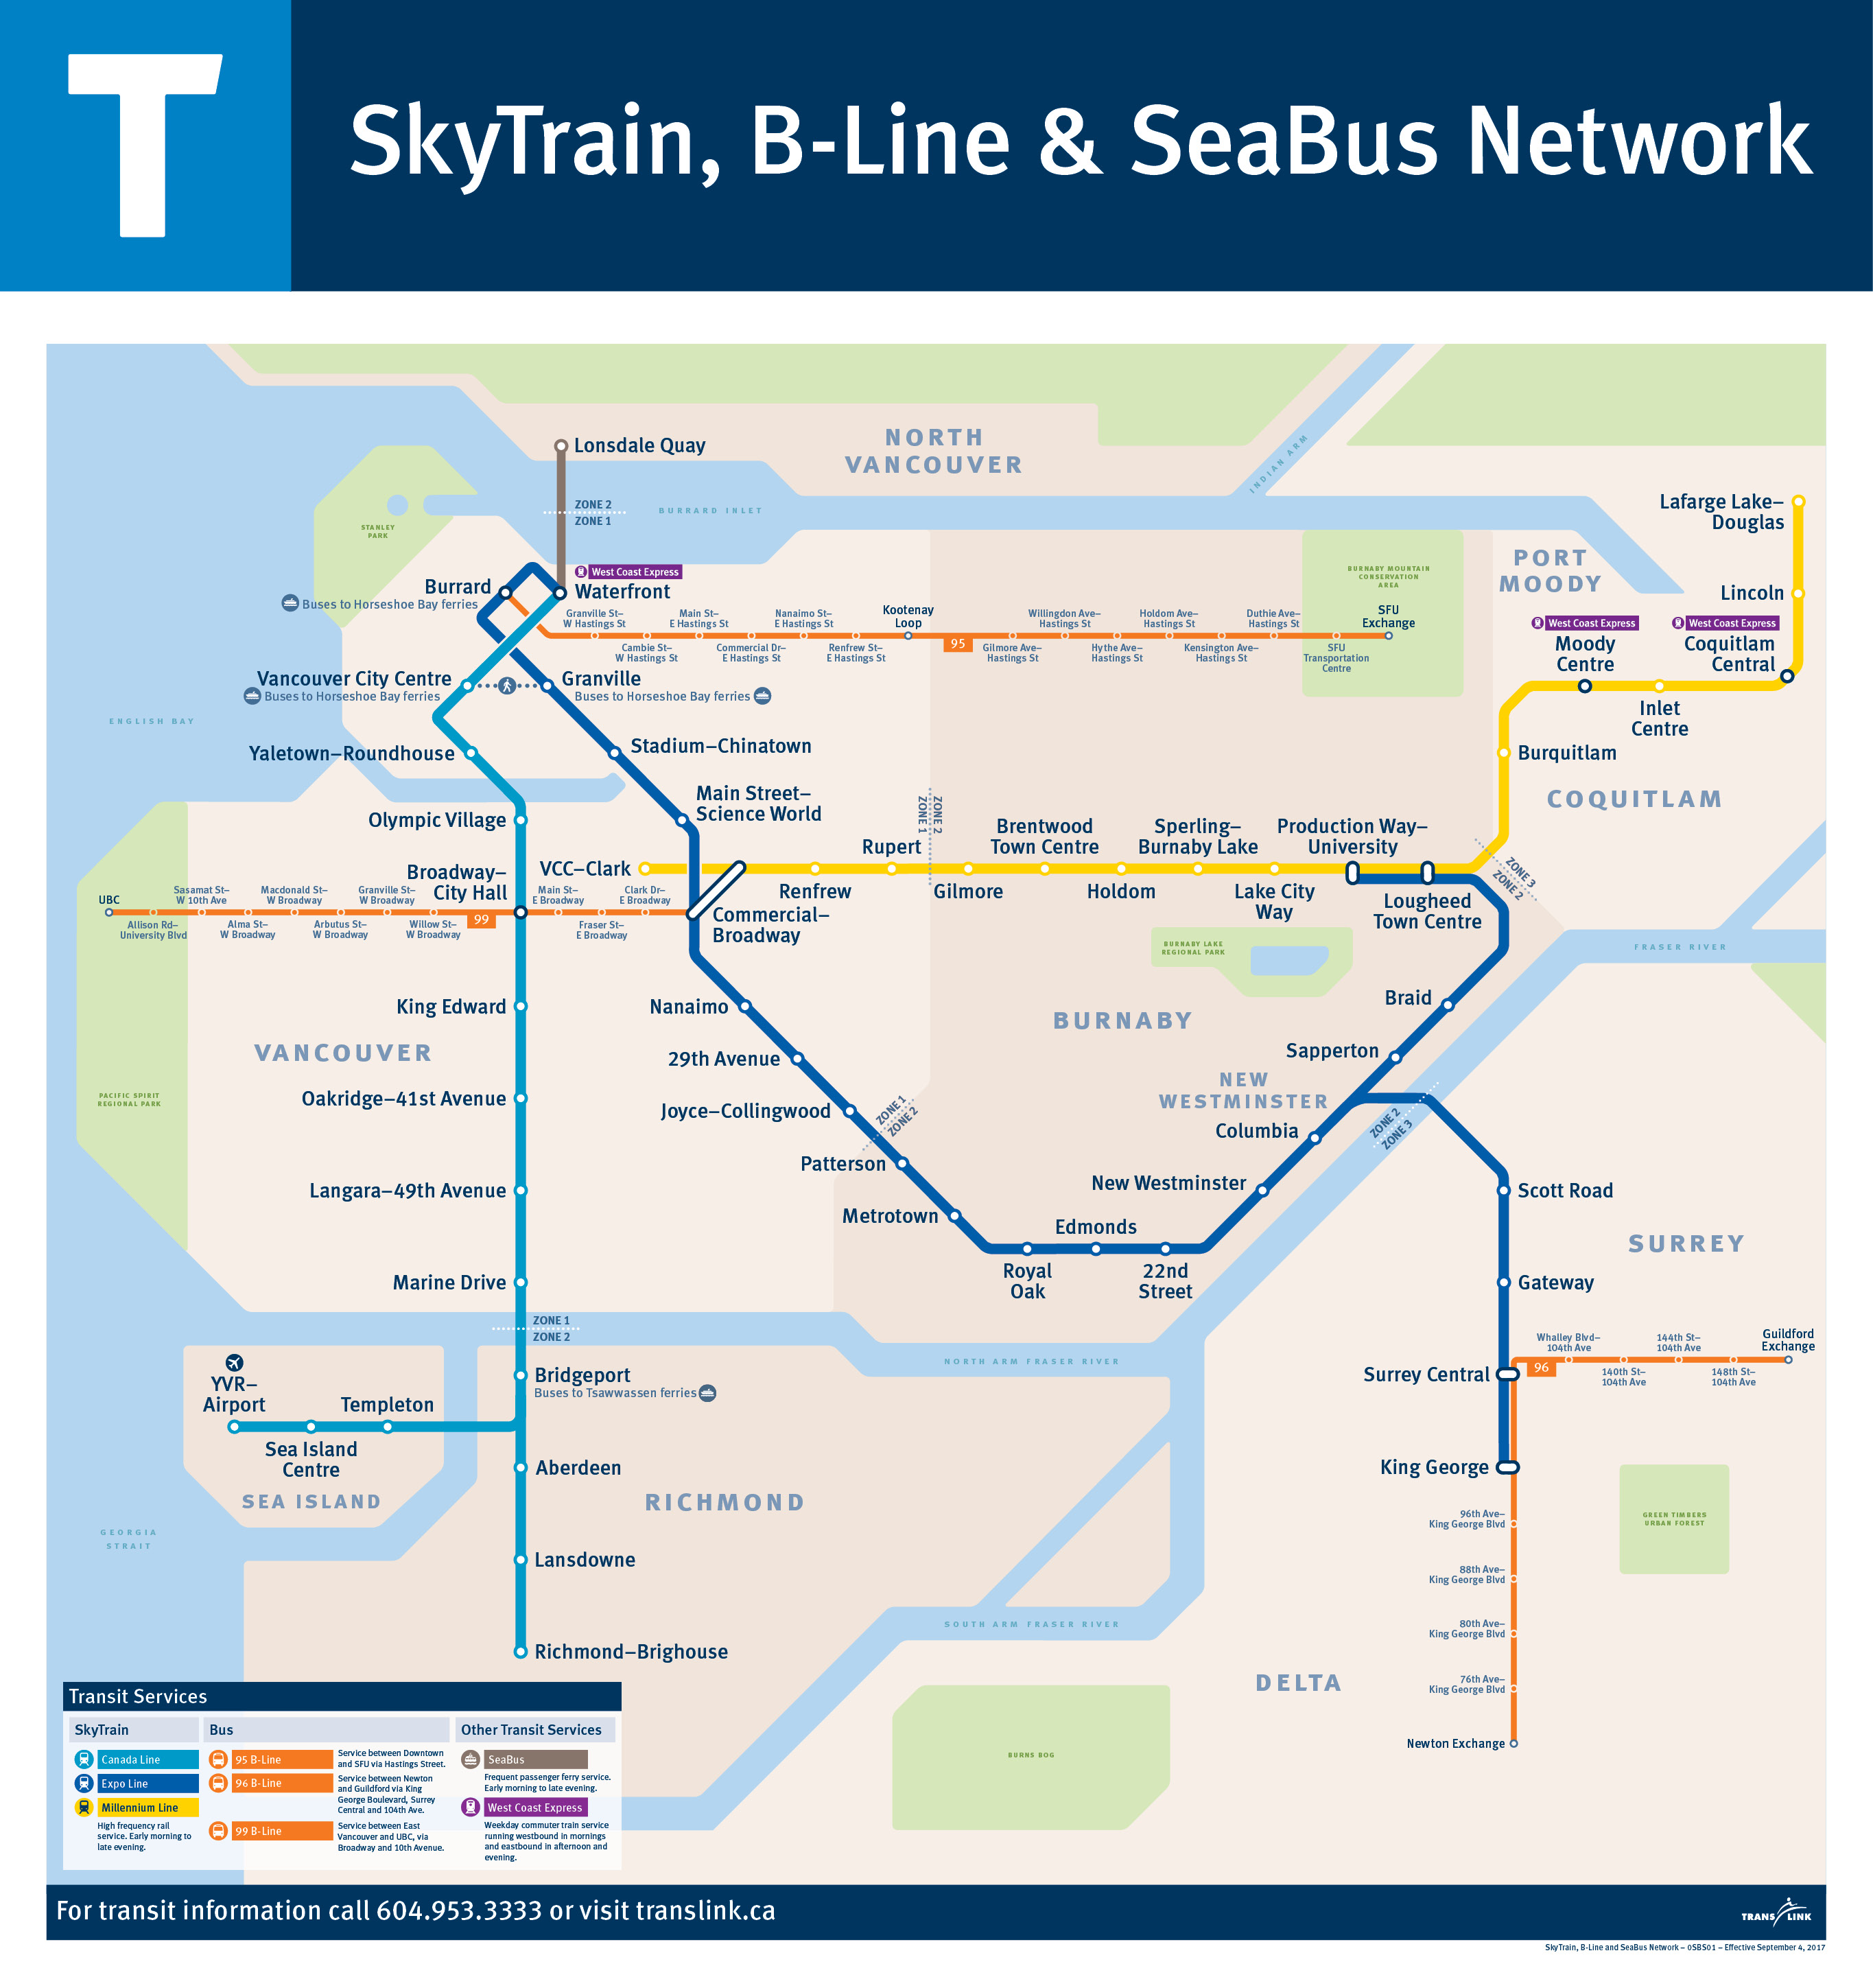 Bc Skytrain Map The Buzzer blog » Wayfinding 101: the SkyTrain, B Line and SeaBus